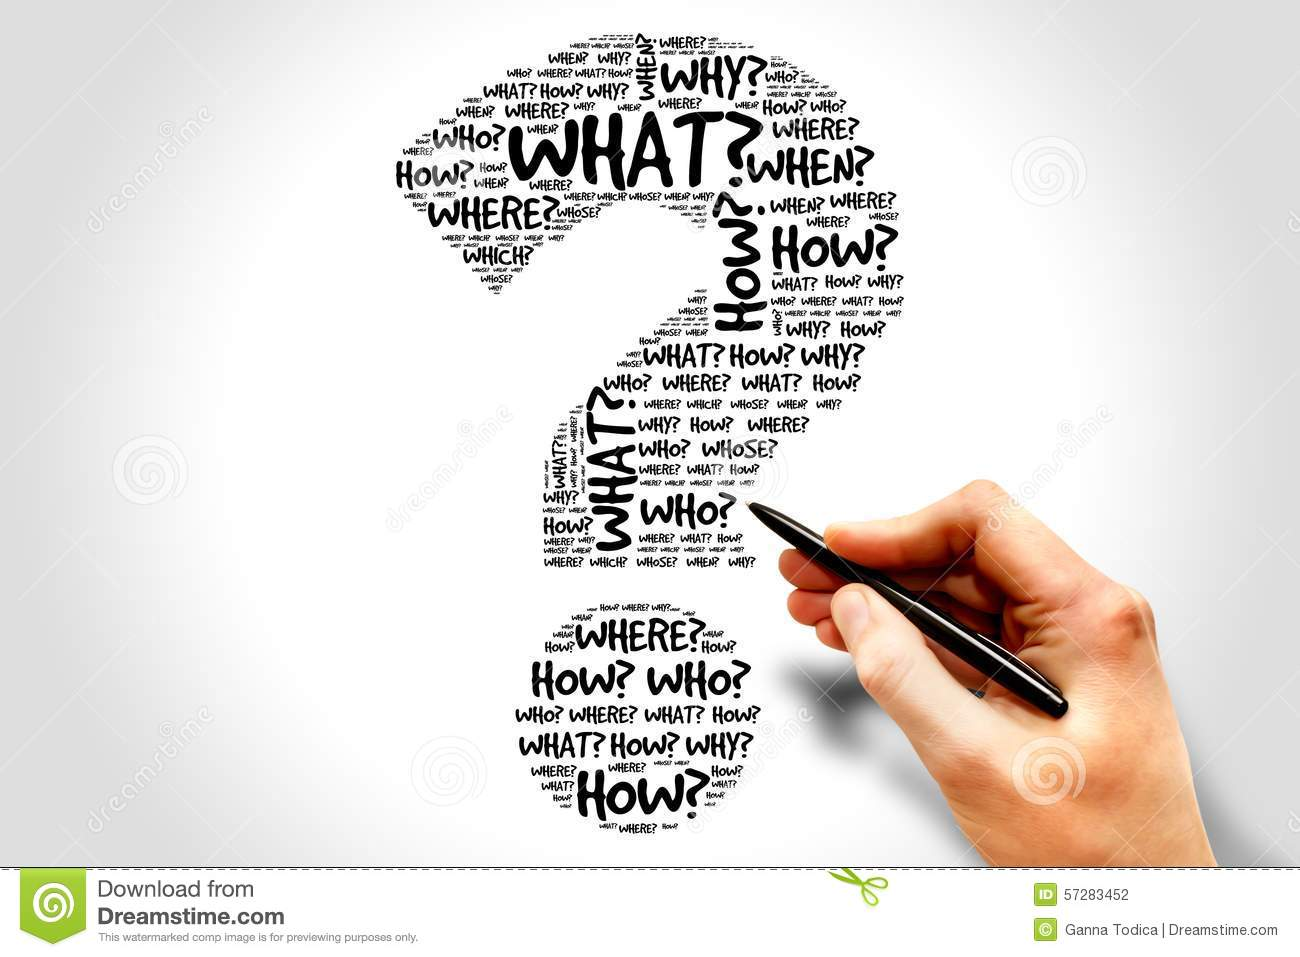 Question mark stock photo. Image of over, show, business ...